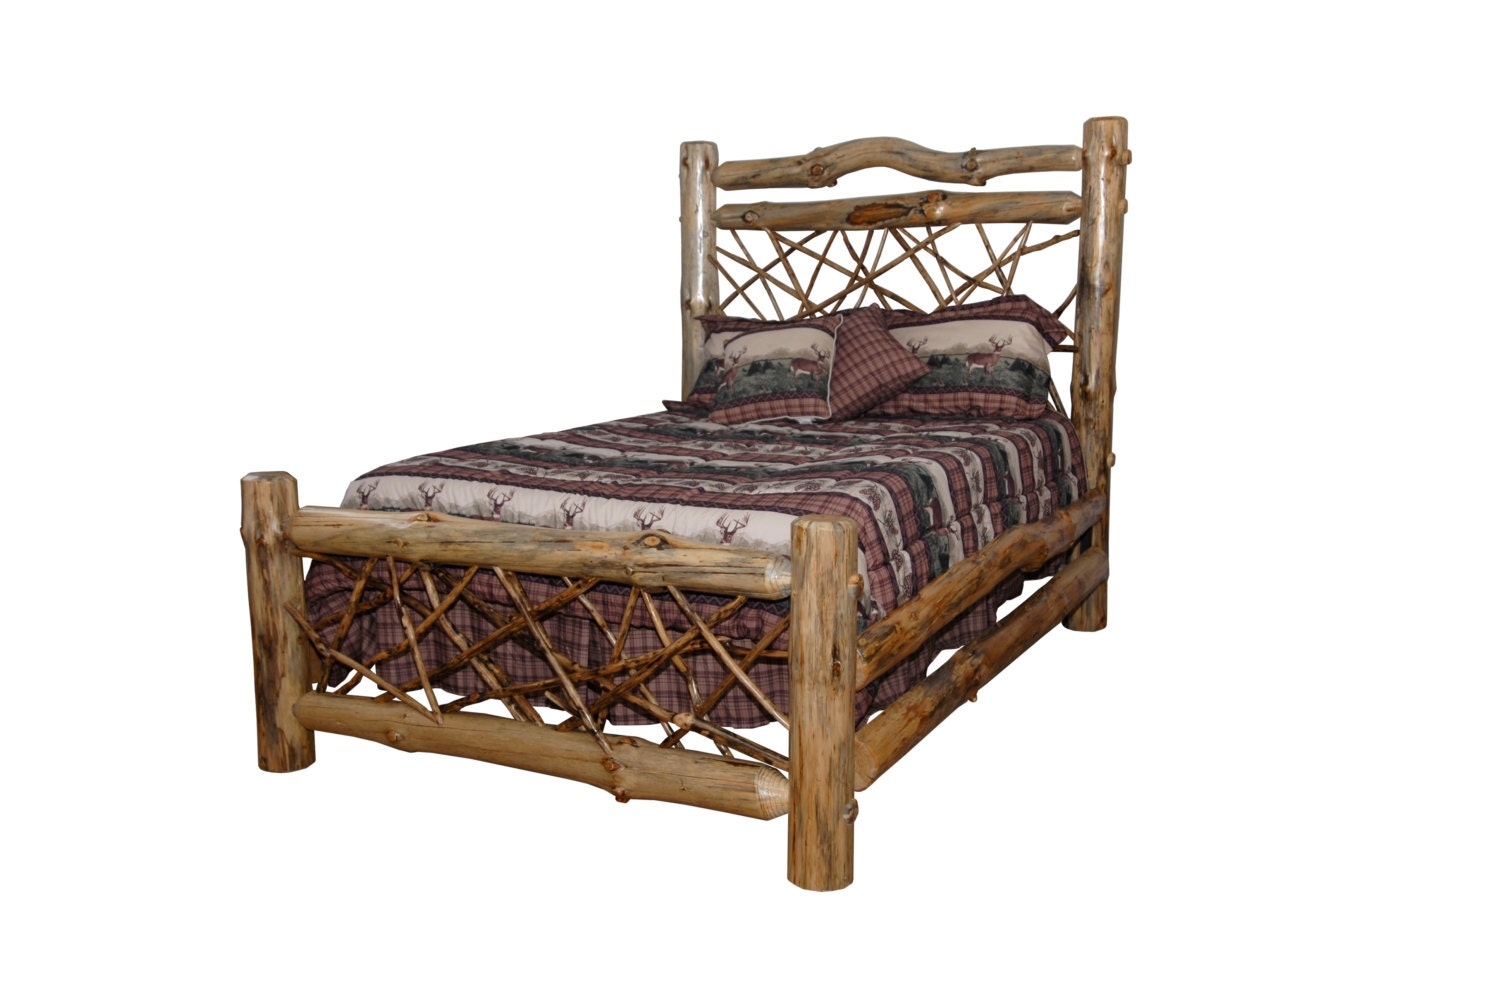 Rustic Pine Log King Size Twig Style Complete Bed Frame